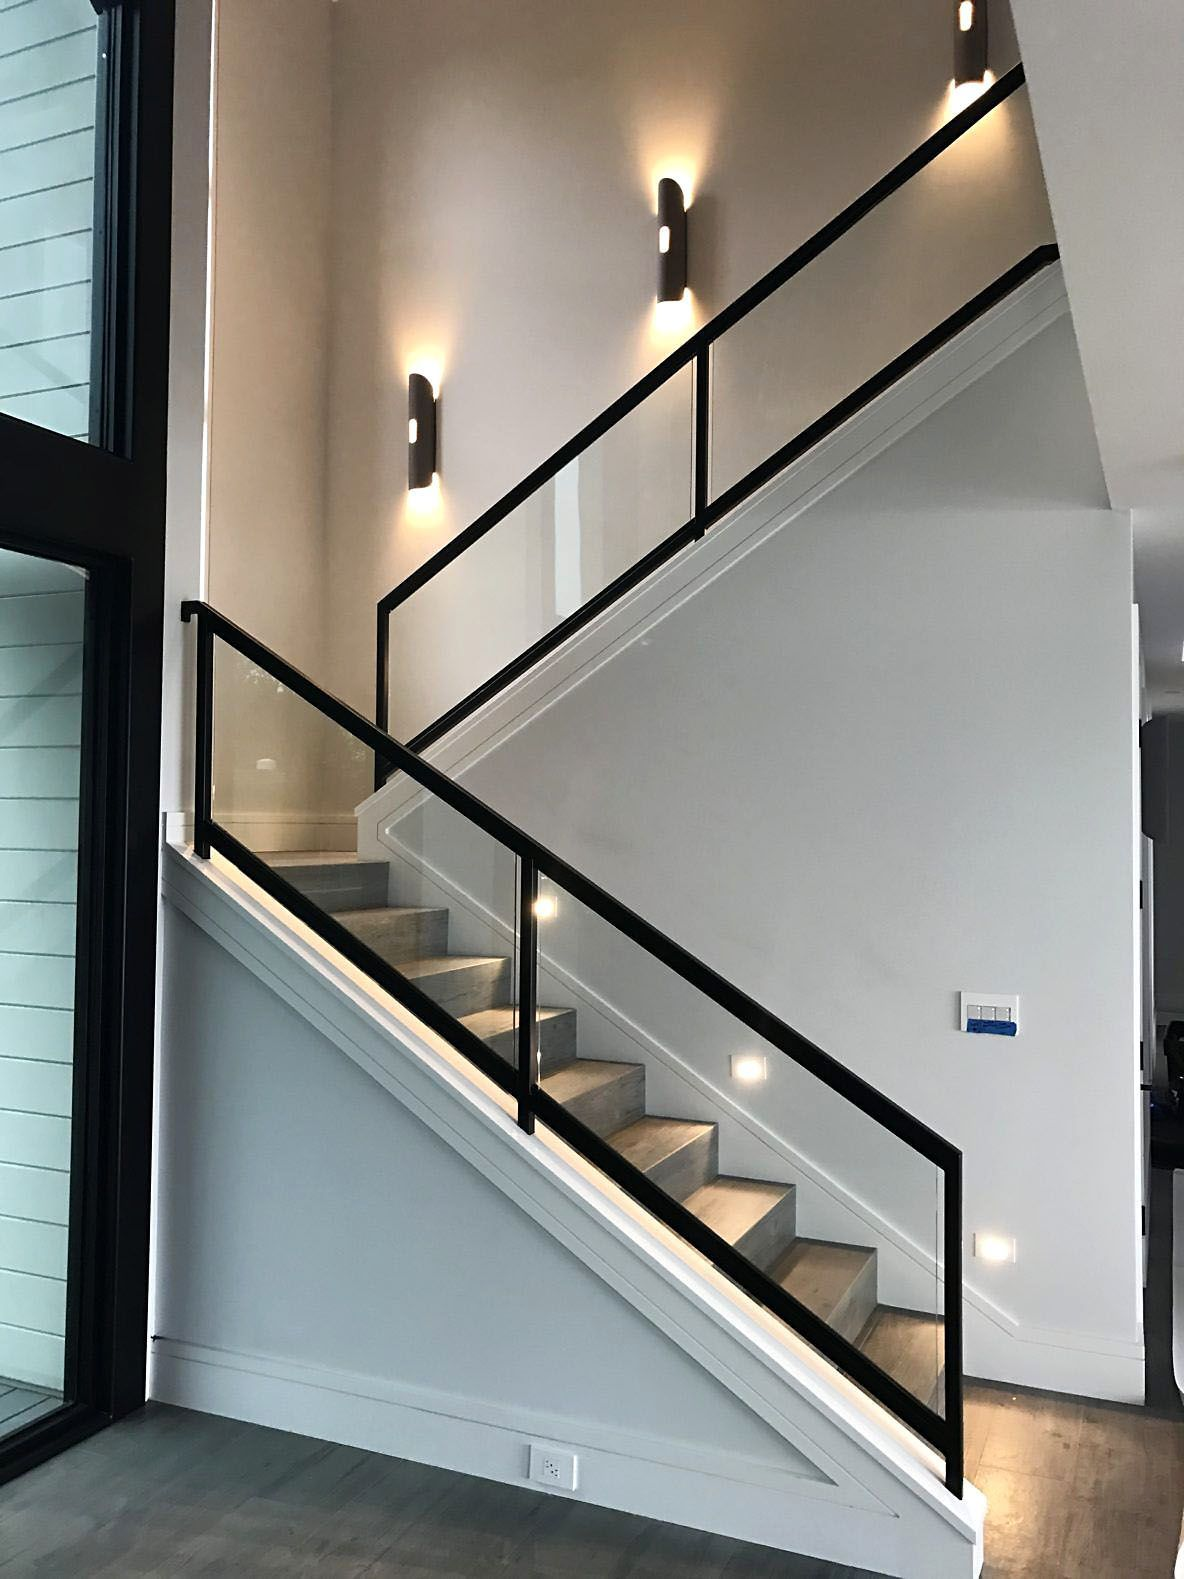 Few Breathtaking Diy Stairs Projects Staircaserailings Few | Modern Home Stair Railings | Single Moulding | Stainless | House | Wall Mounted | Mountain